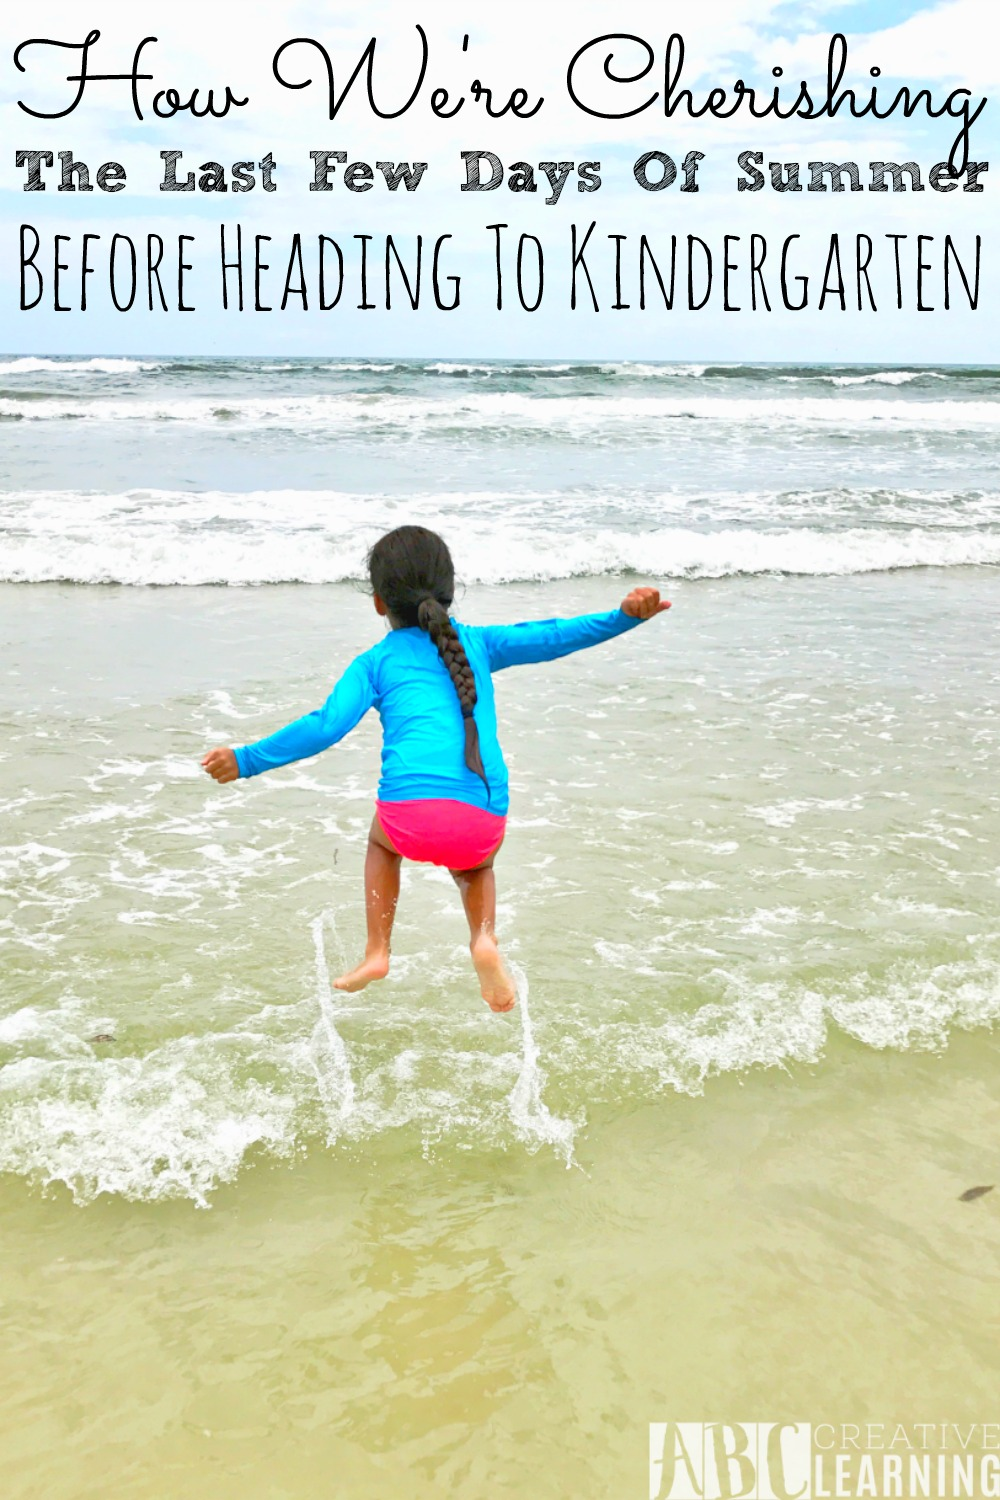 How We're Cherishing The Last Few Days Of Summer Before Heading To Kindergarten - abccreativelearning.com